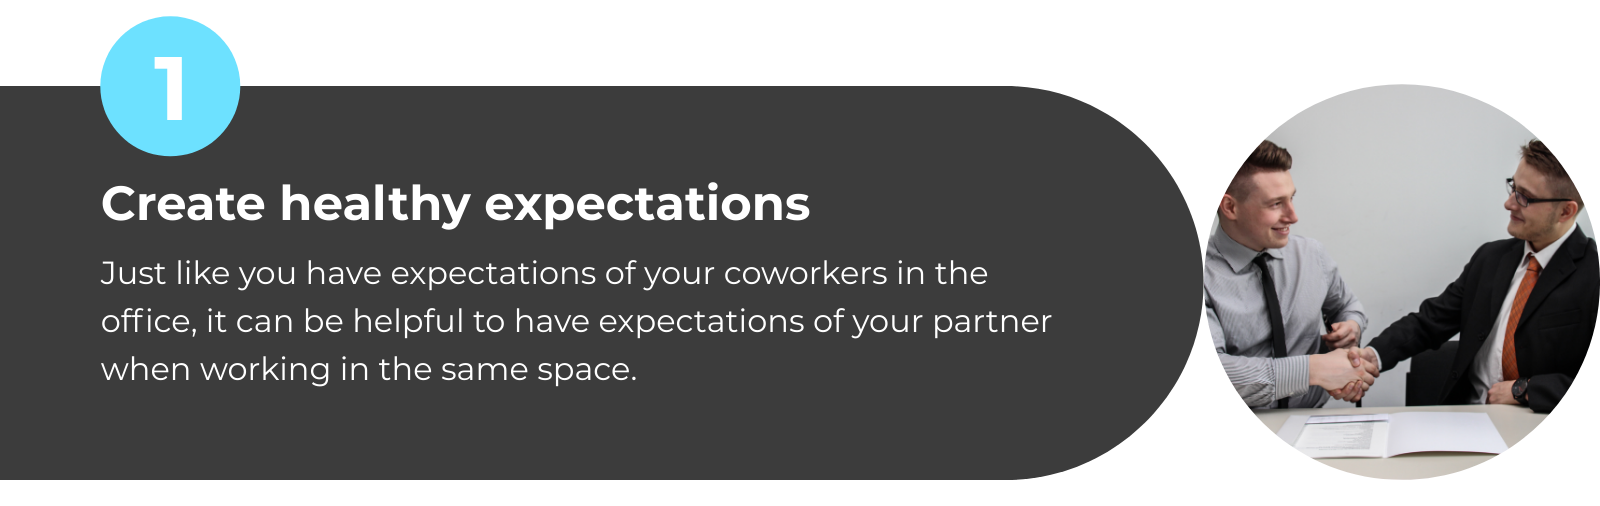 WFH with Partner Tip 1: Create Healthy Expectations